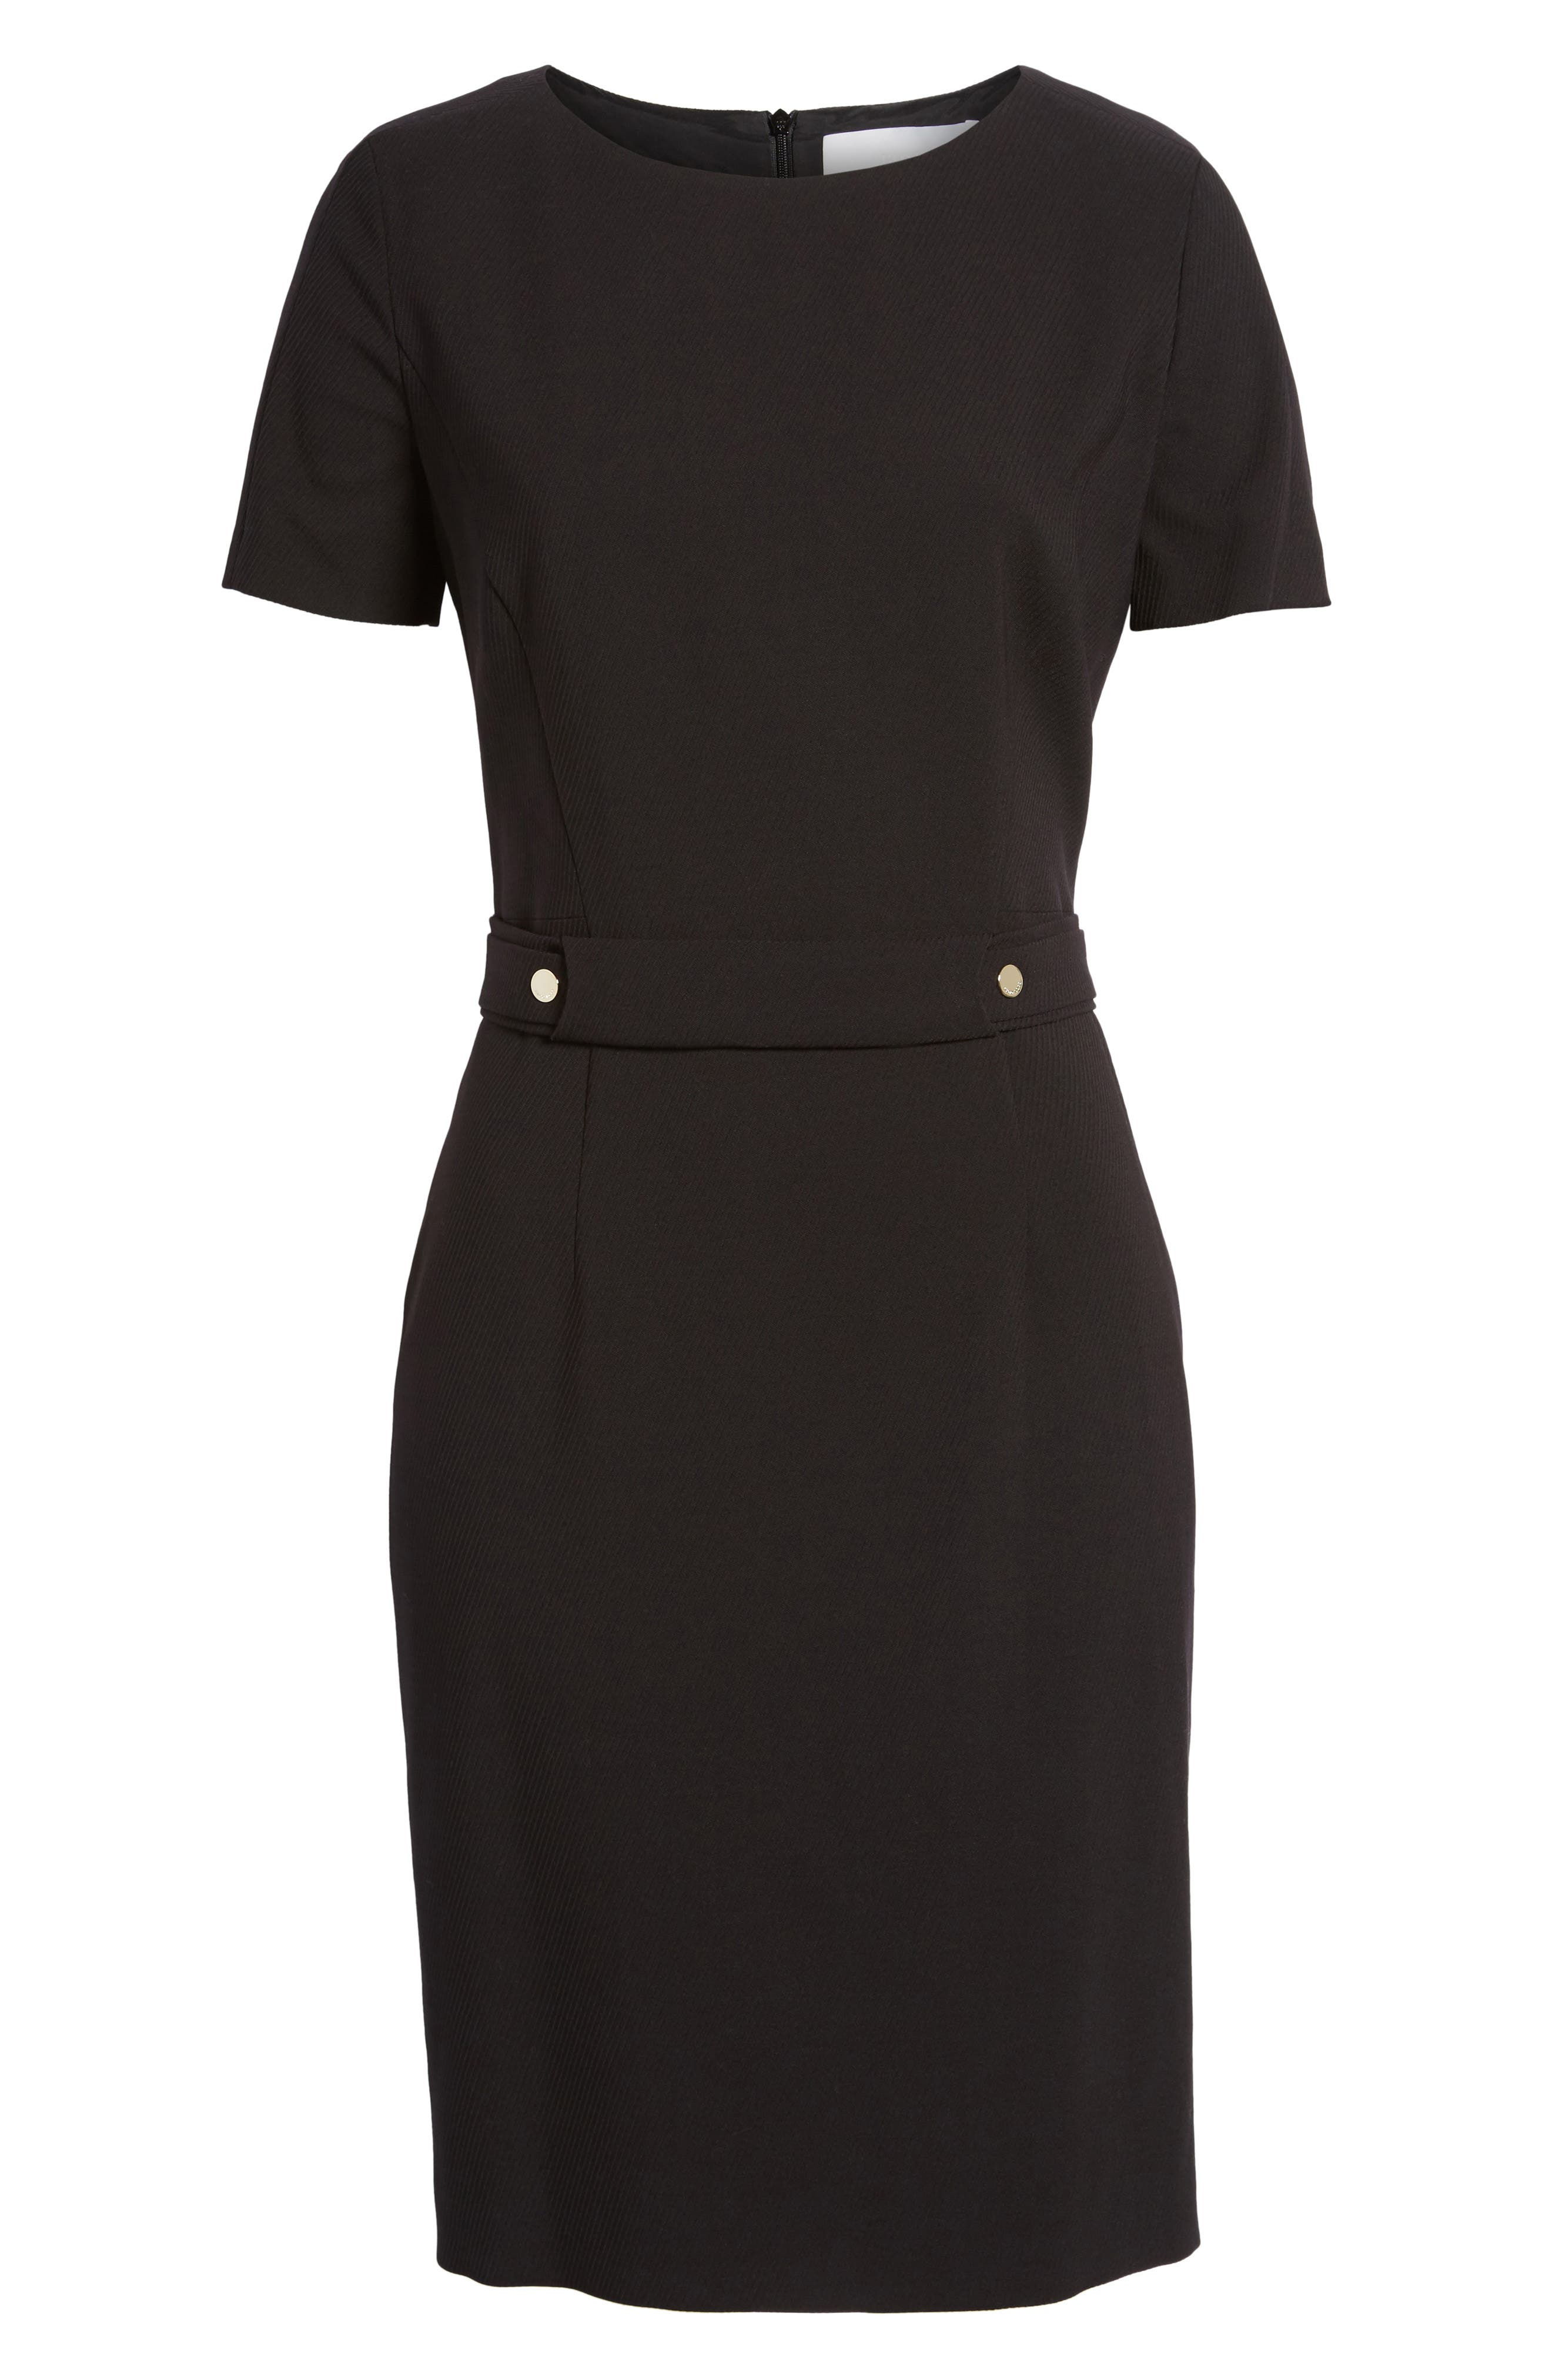 Desulea Stretch Wool Sheath Dress,                             Alternate thumbnail 6, color,                             Black